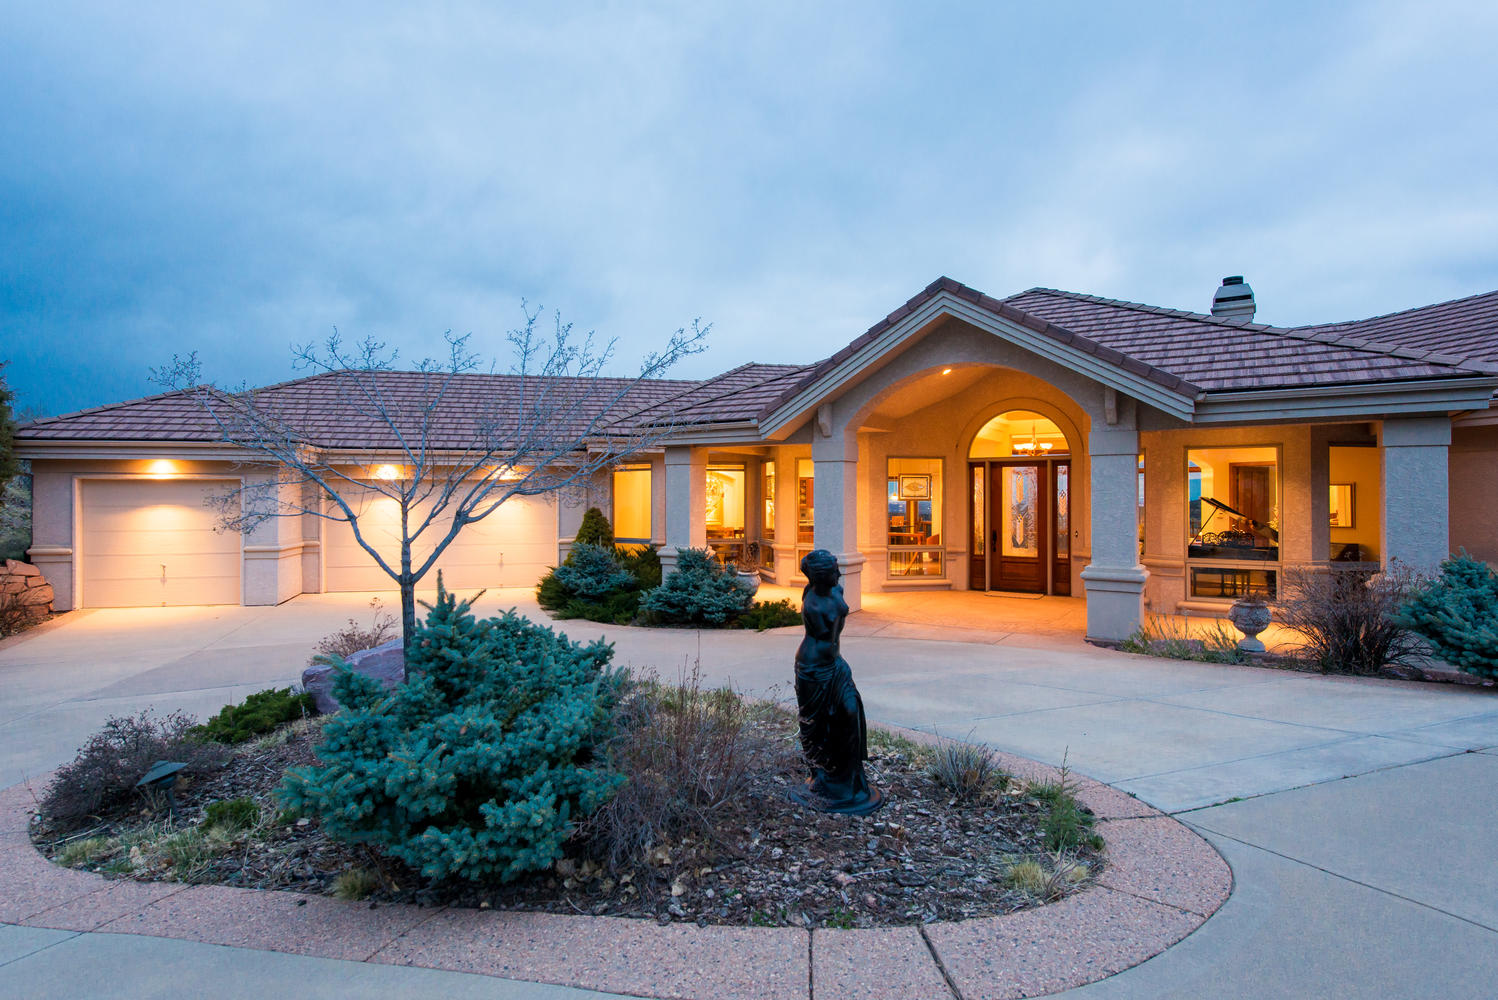 Single Family Home for Sale at Stunning Summit Chalet custom 16461 Rocky Point Lane Morrison, Colorado, 80465 United States